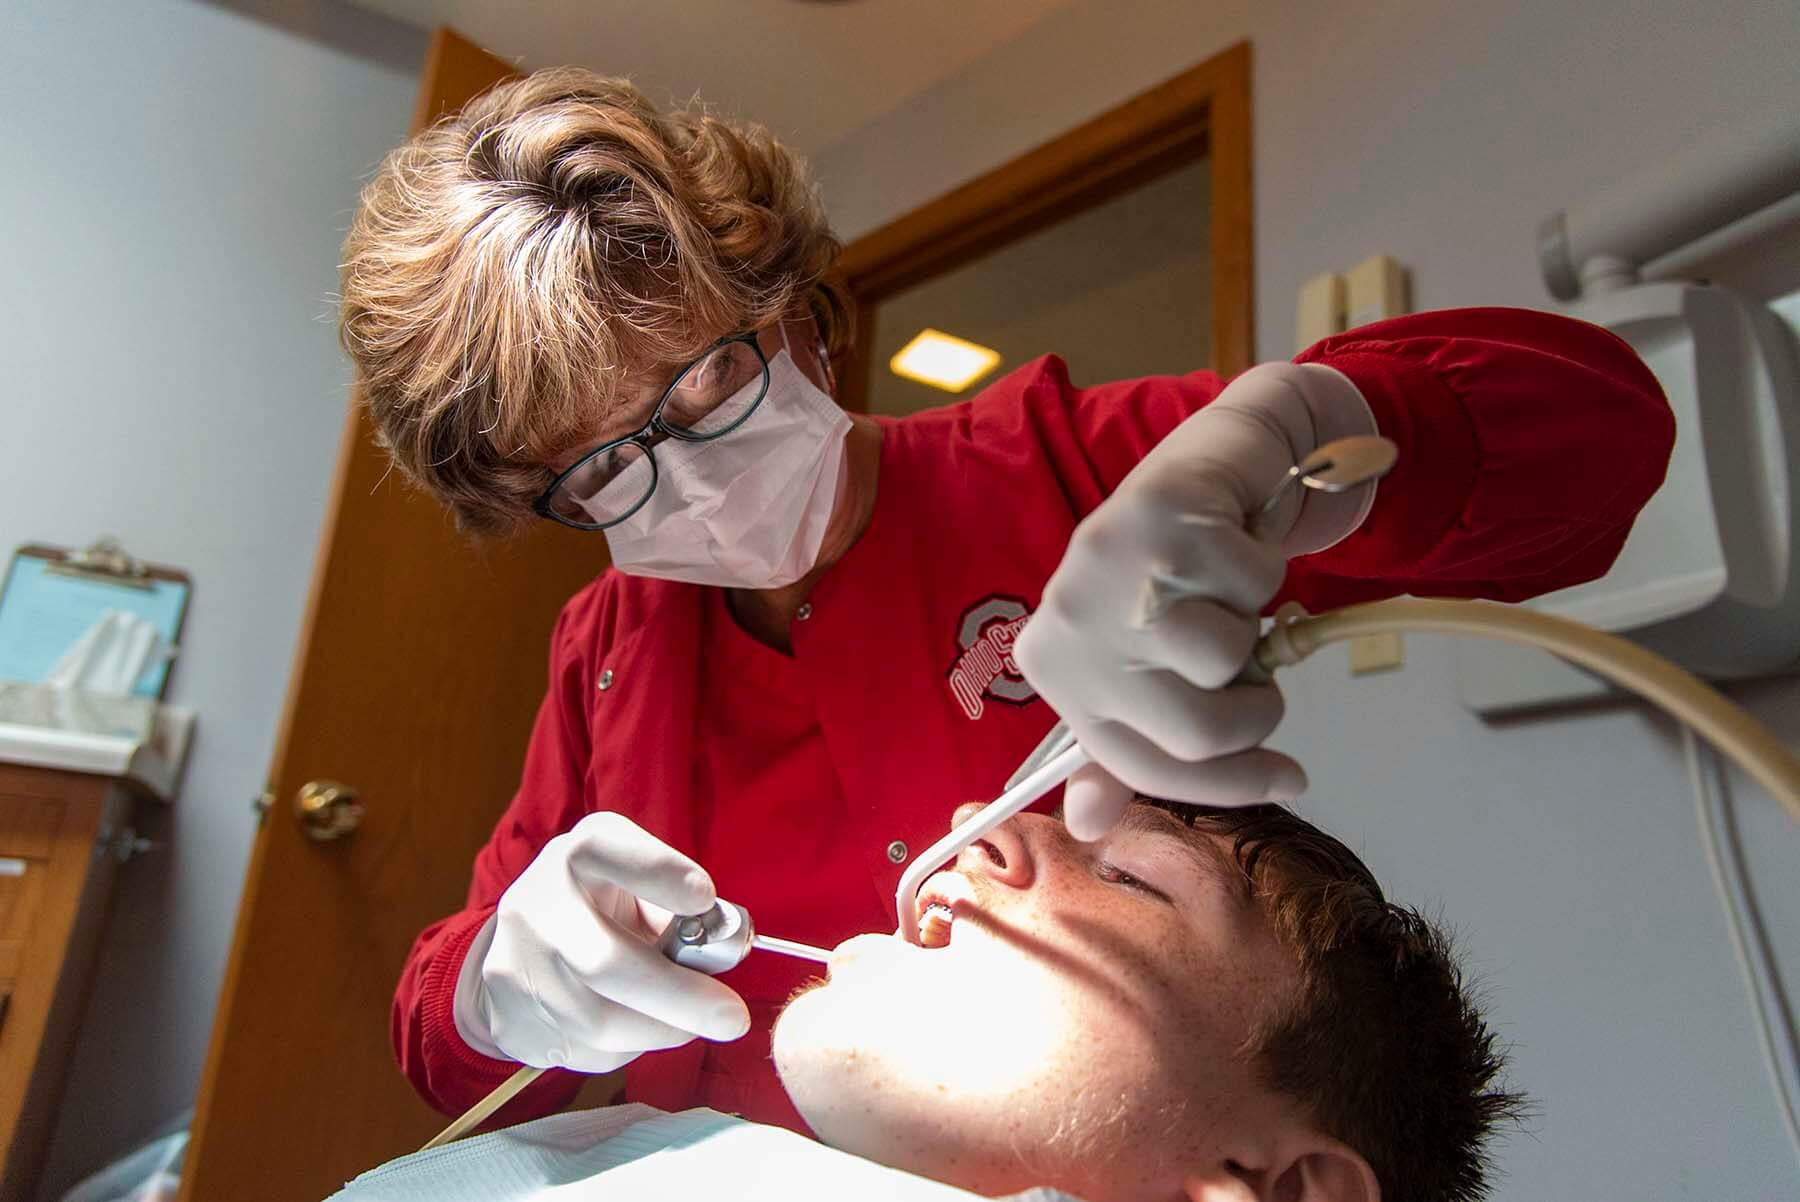 Preventative, comprehensive dental services